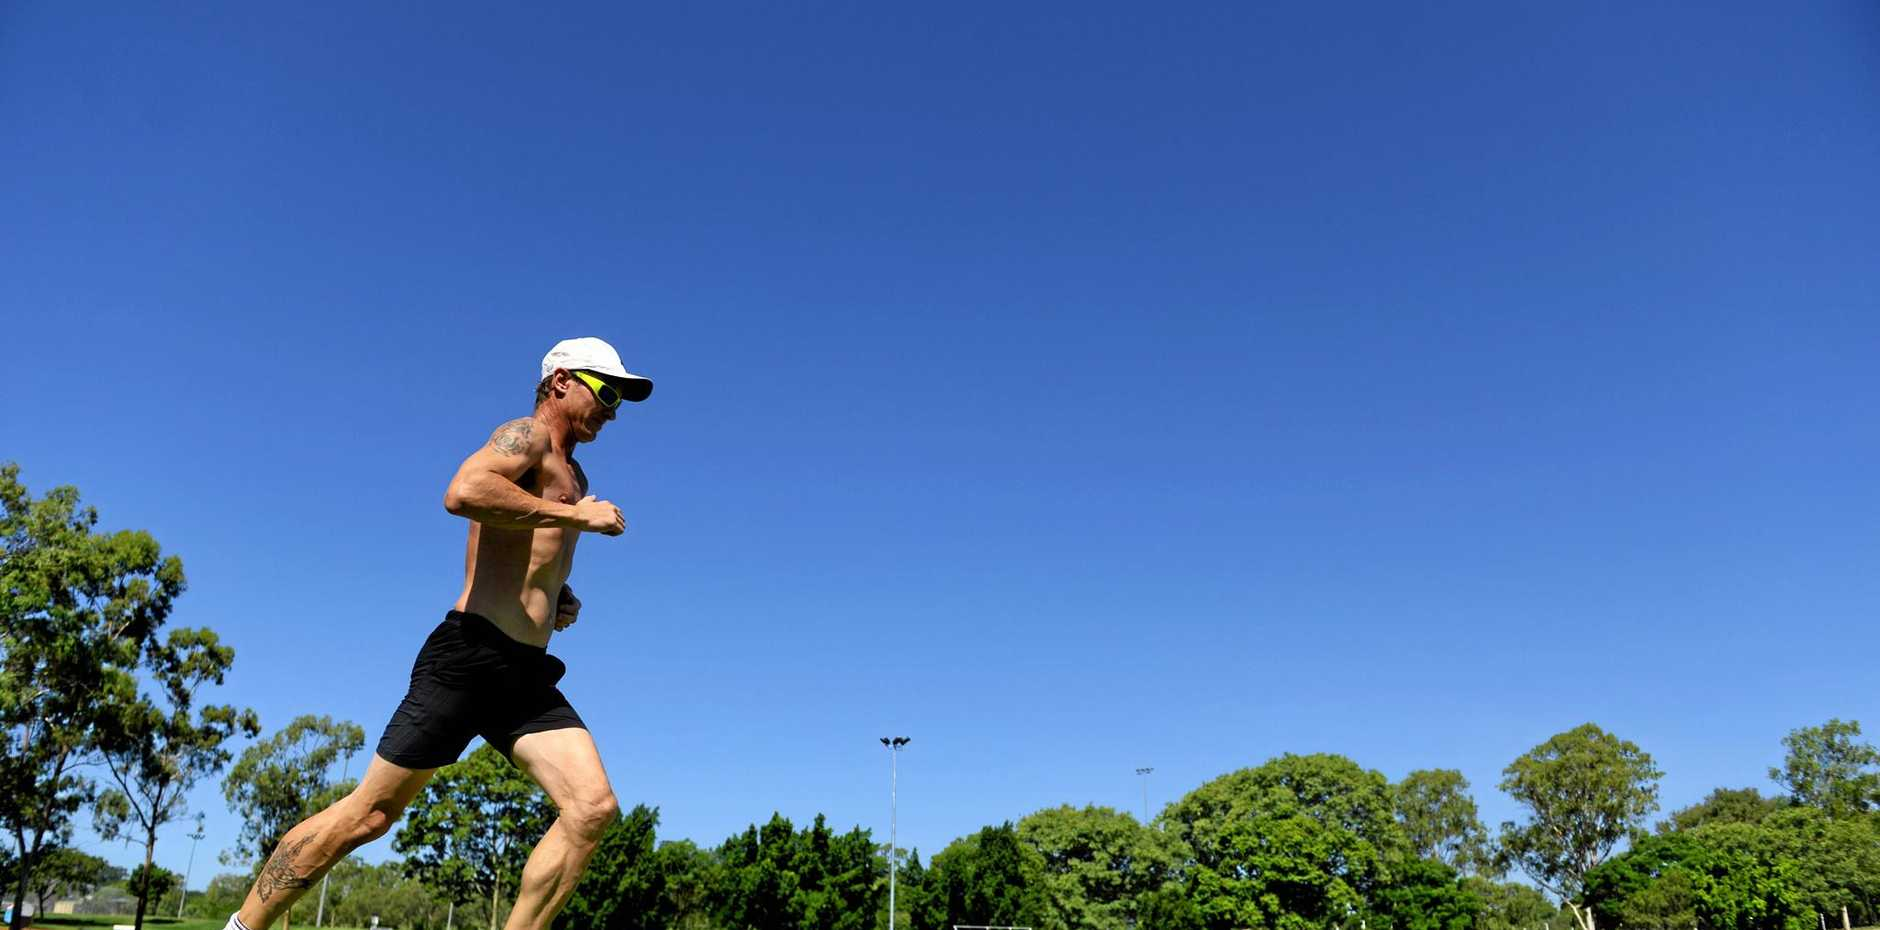 FOR THE KIDS: Mathew 'Coxy' Cox is running from Perth to Ipswich to raise money for the Ipswich Hospital Foundation, Children's Sunshine Ward.